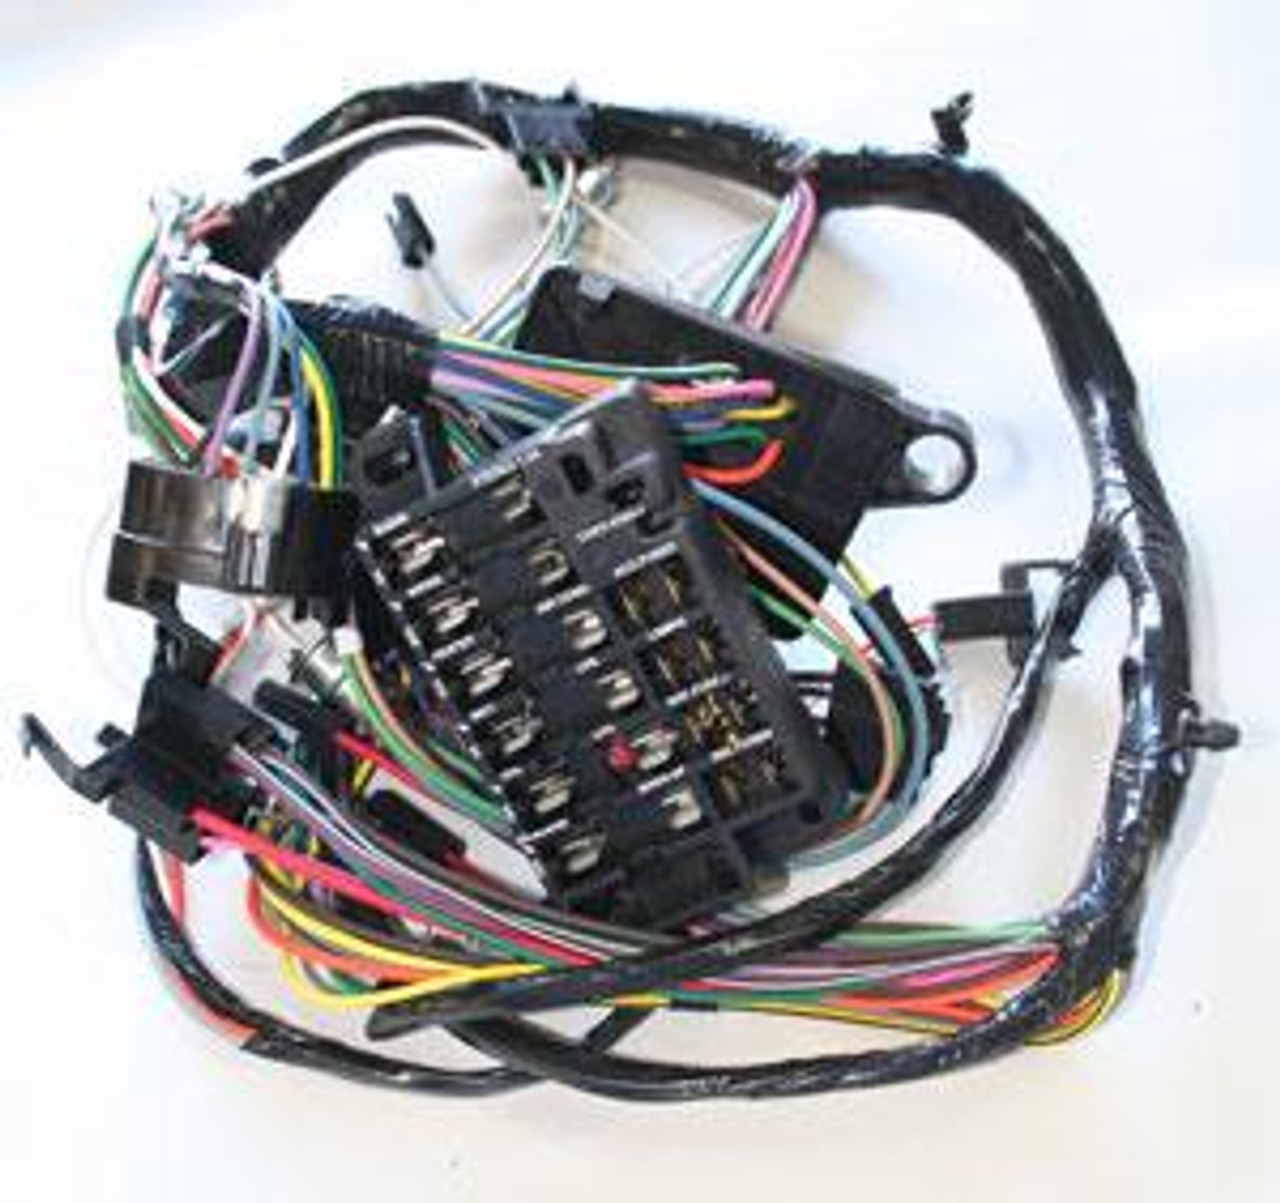 1966 Chevelle El Camino Dash Harness, Console shift, with Gauges (CH67027)